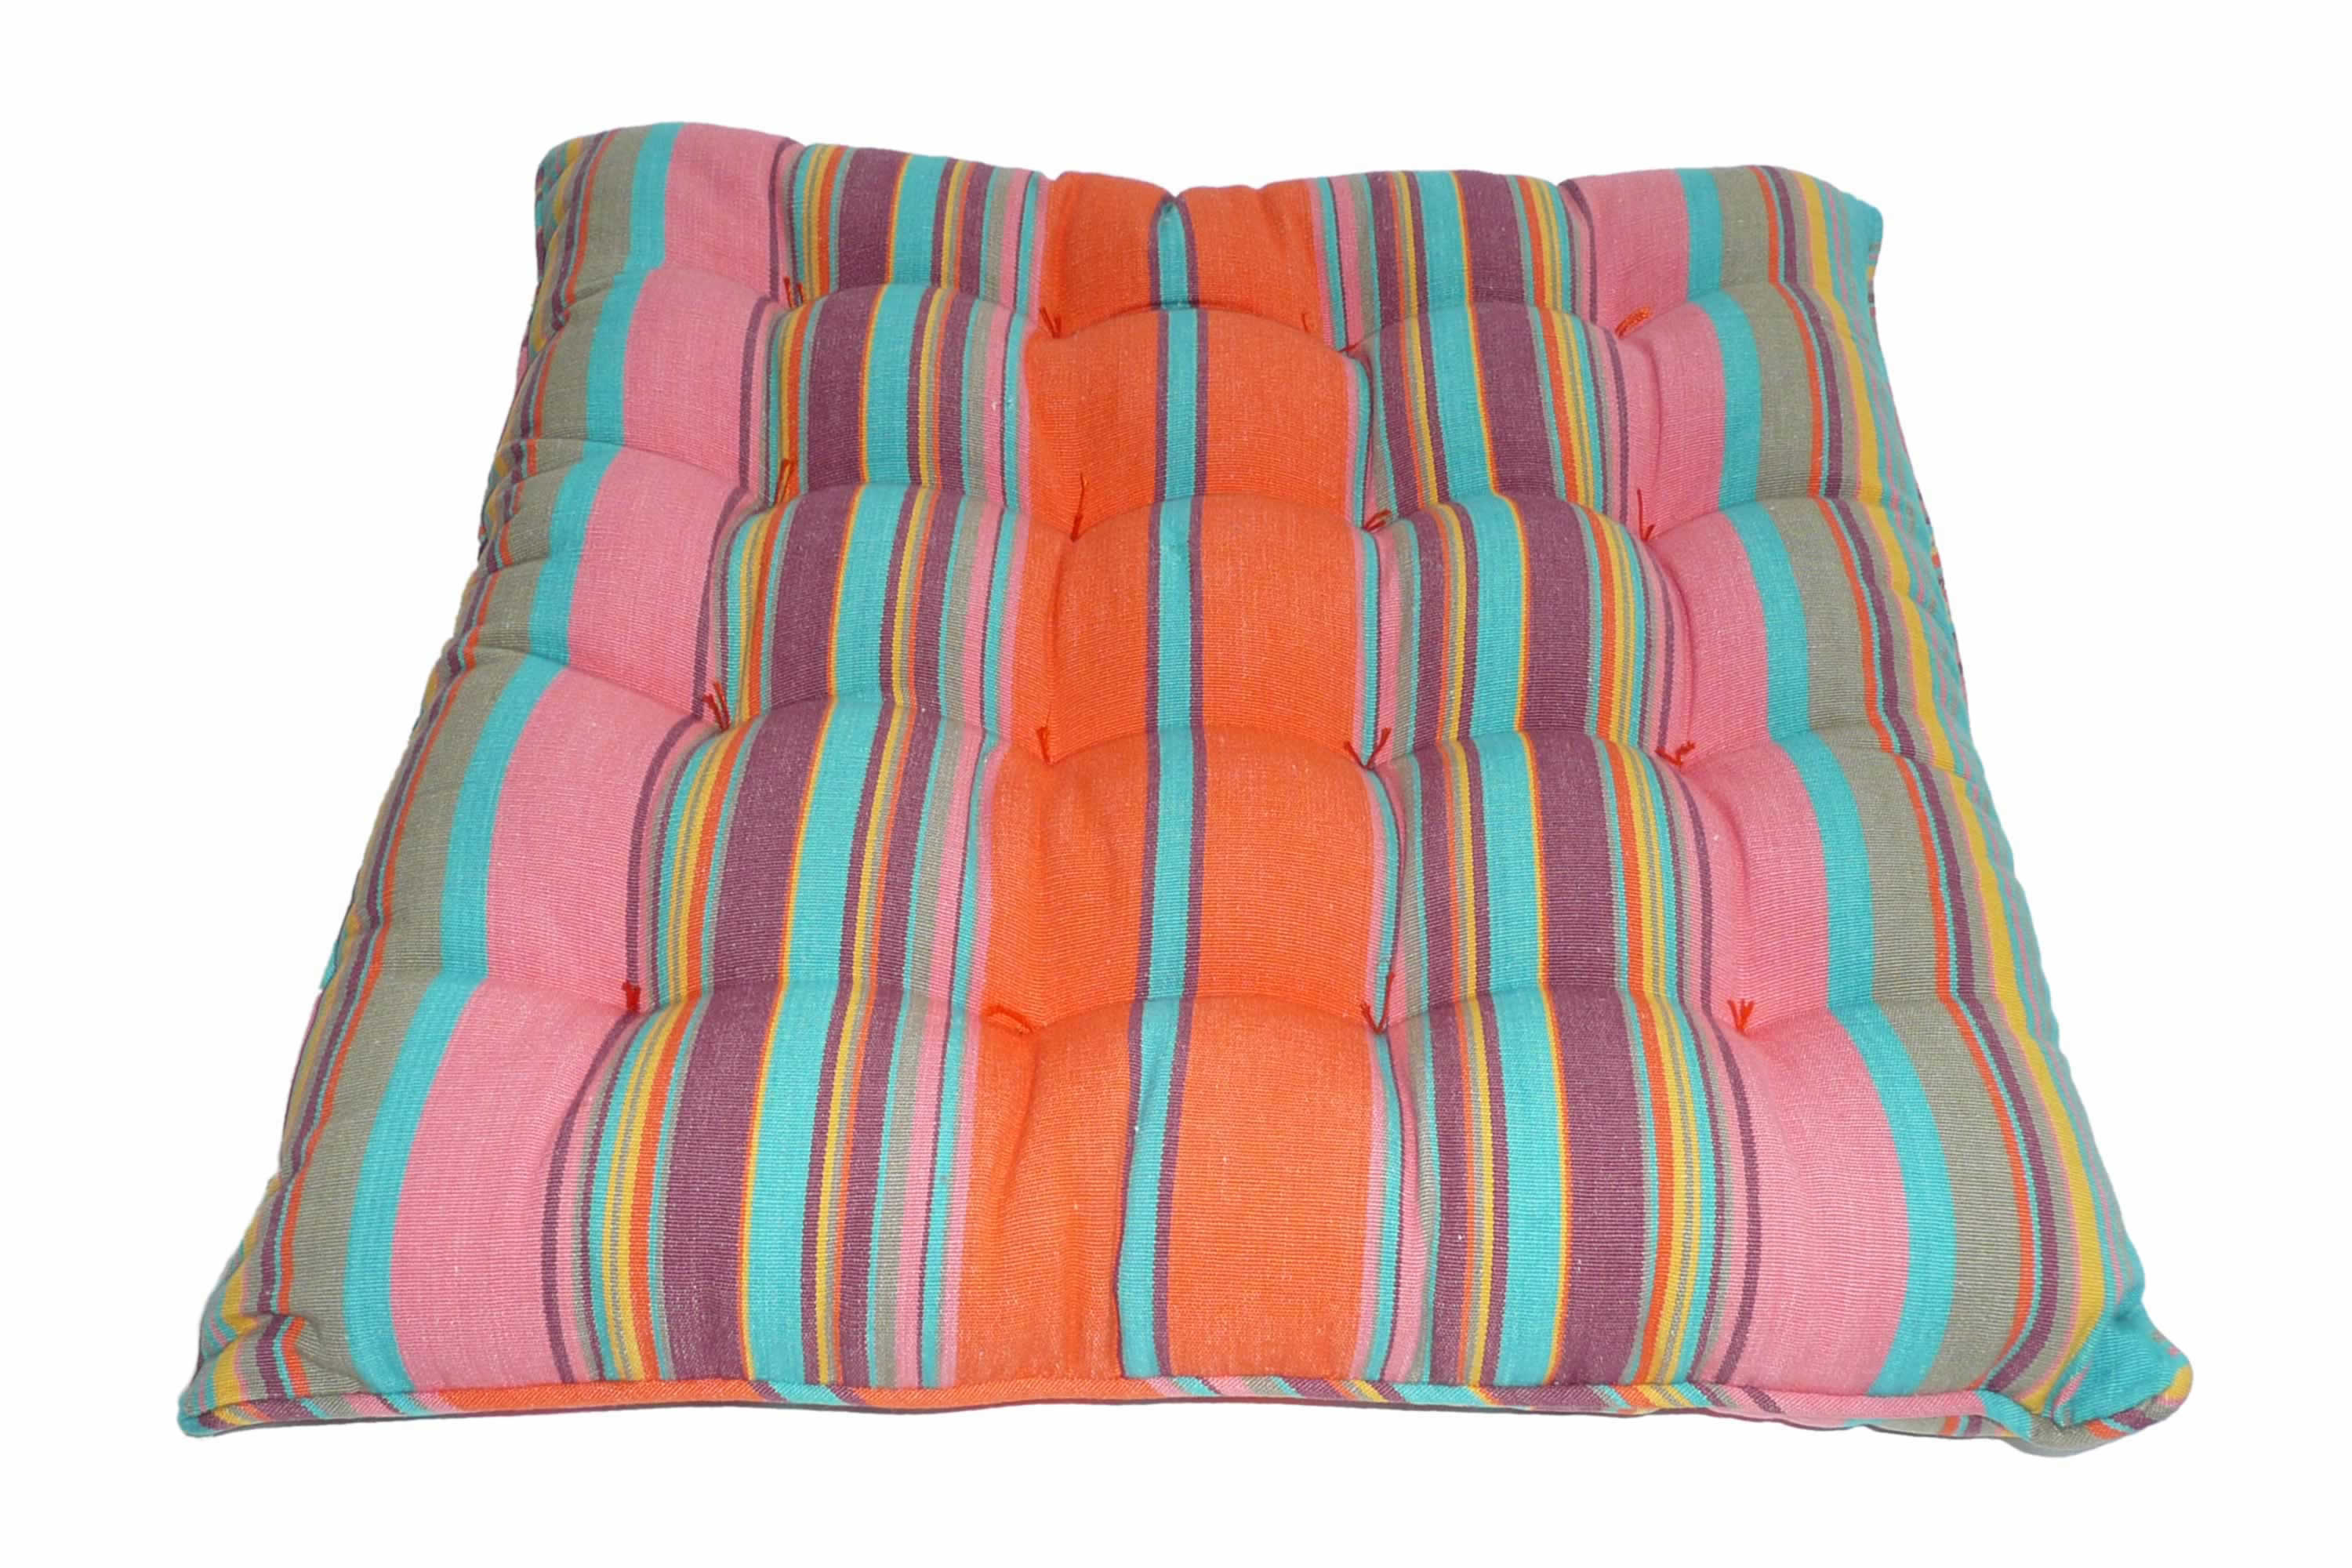 turquoise, salmon pink, tangerine - Striped Seat Pads with Piping